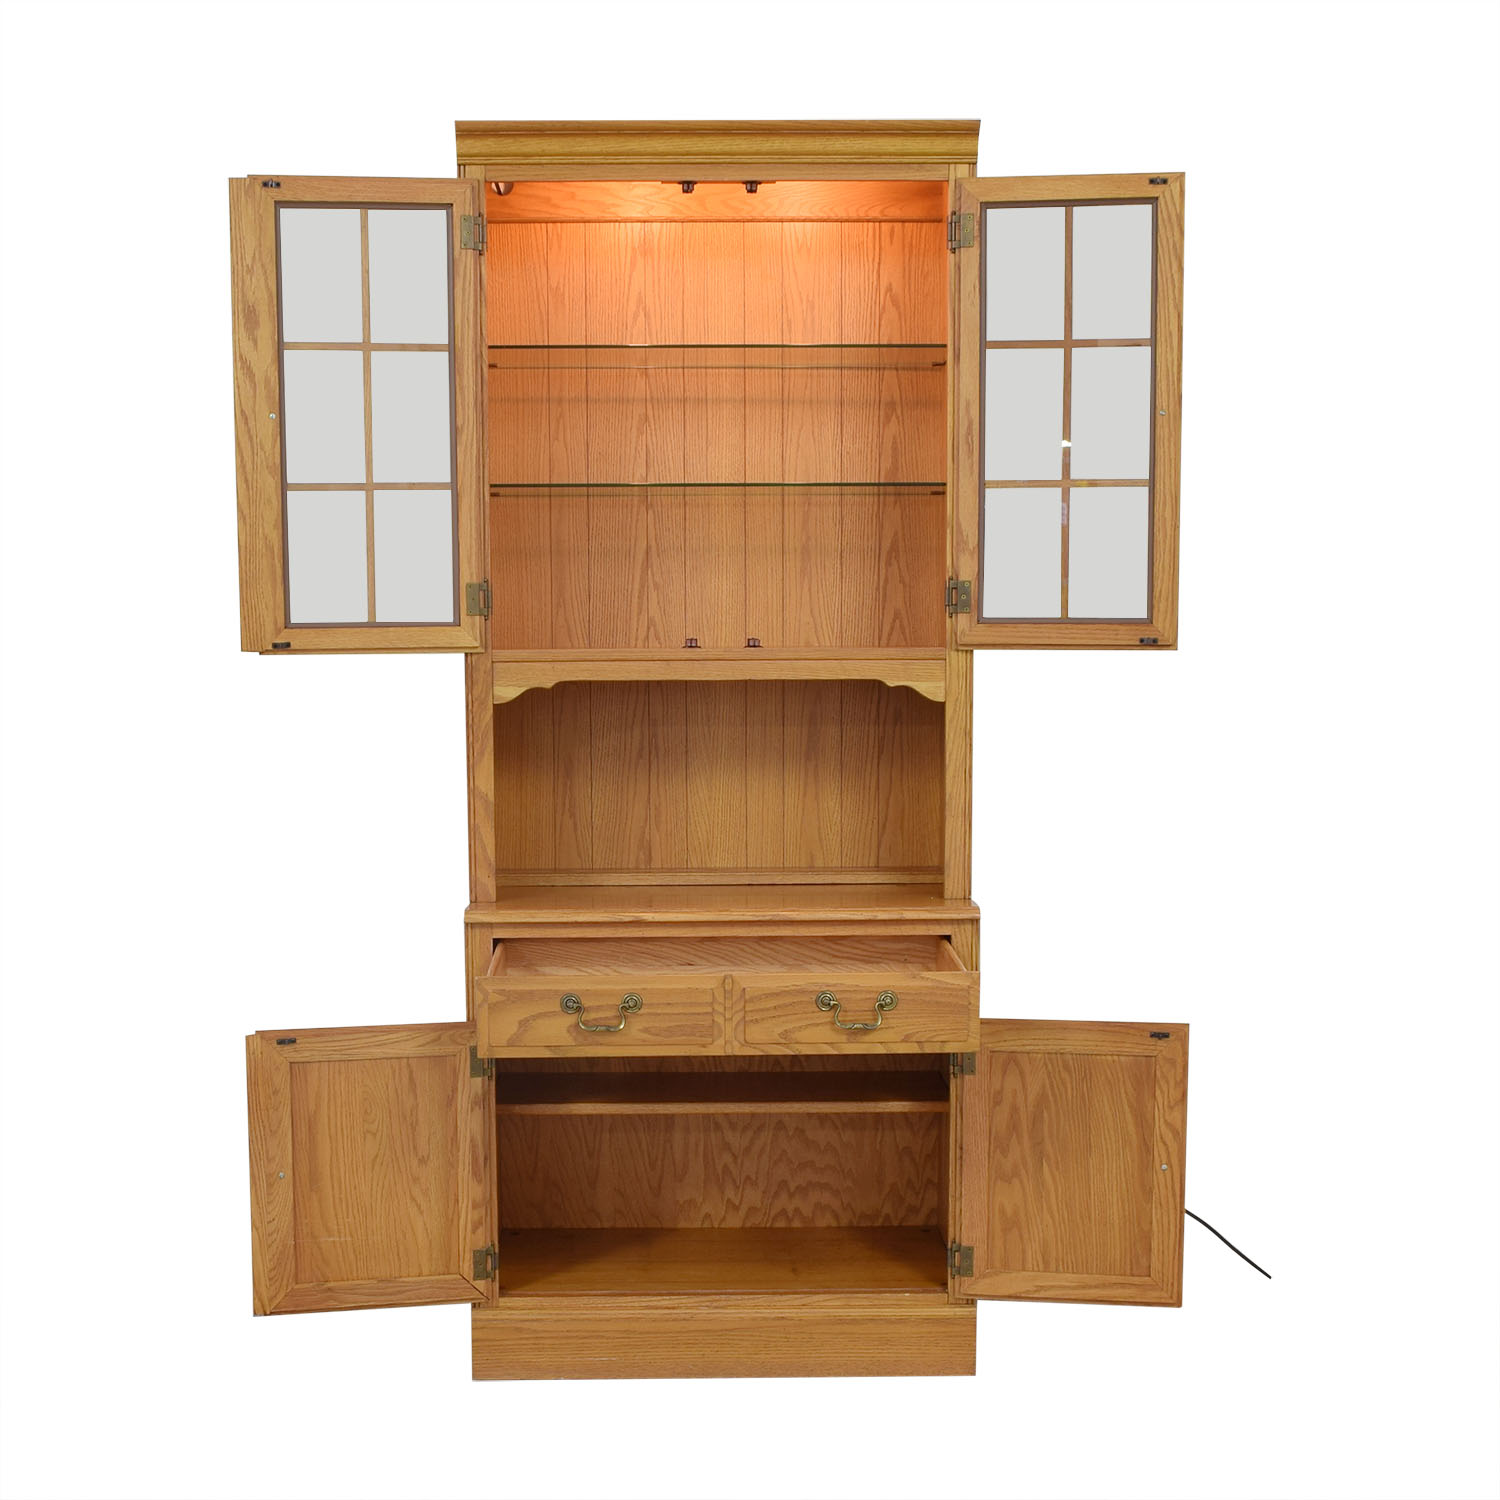 Ethan Allen Canterbury Oak Chippendale Display Case and Cabinet dimensions